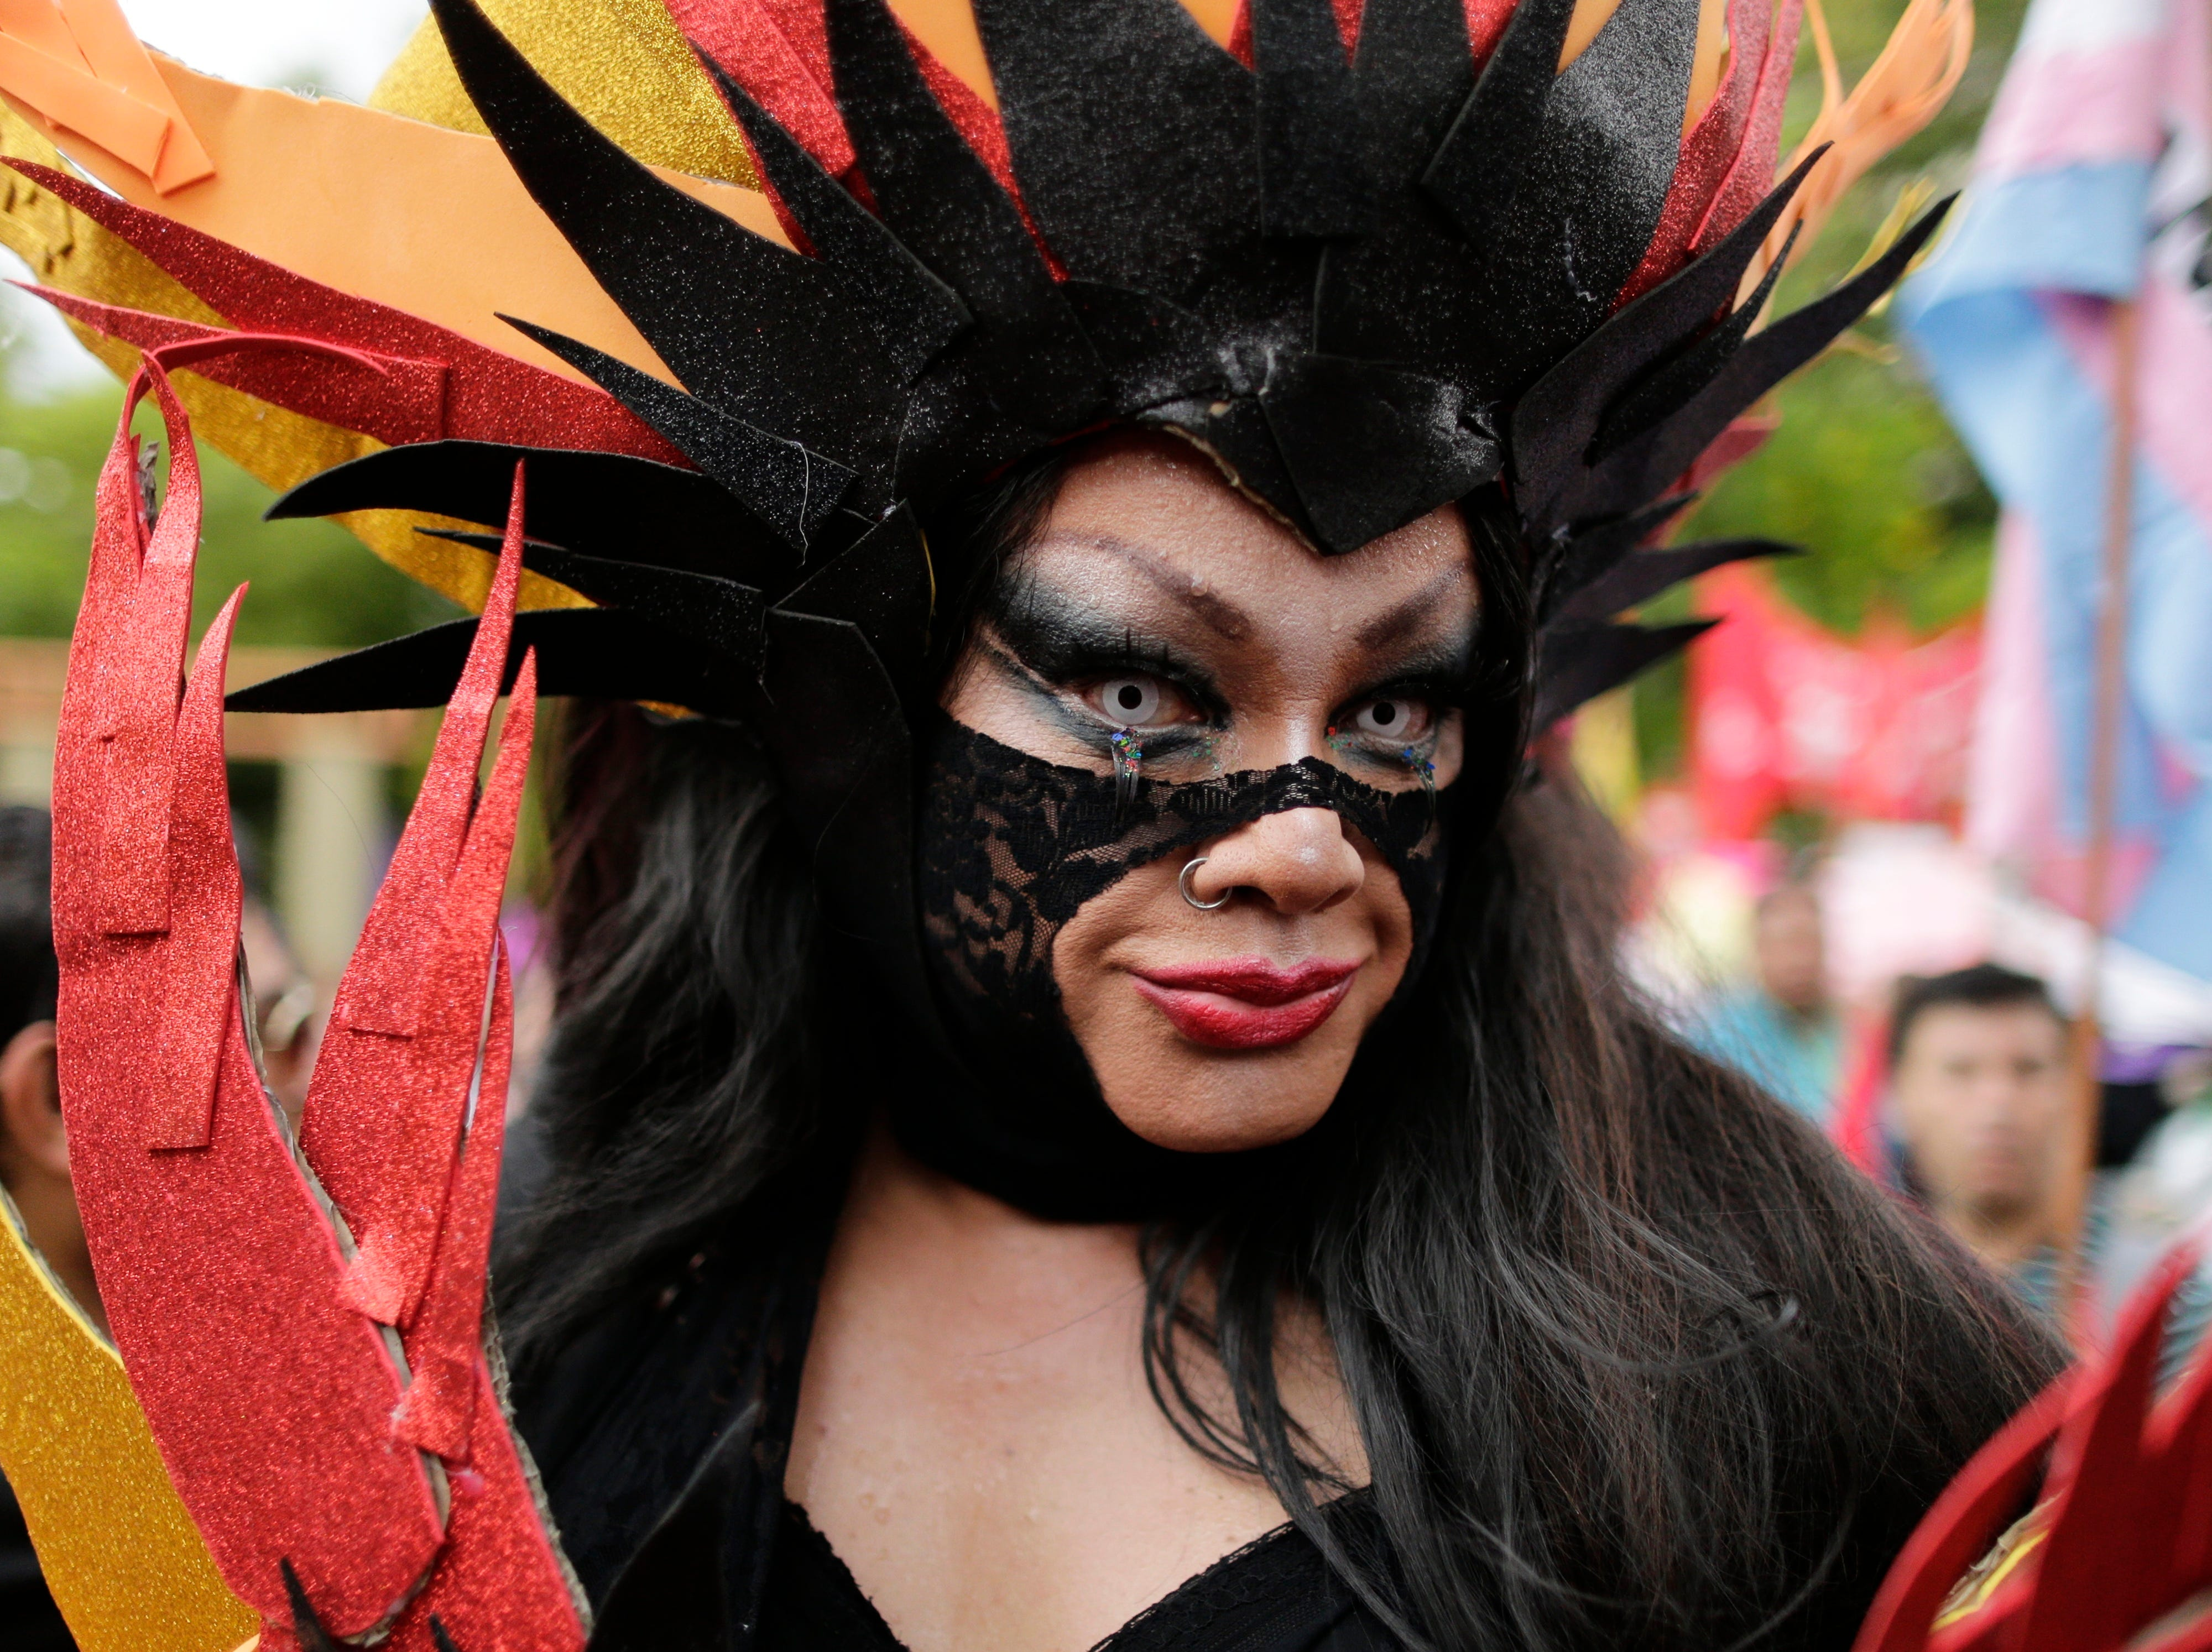 A transsexual participates in a march to commemorate International Women's Day, Friday, March 8, 2019, in Asuncion, Paraguay. Thousands of people marched in Asuncion's downtown to demand women's rights. (AP Photo/Jorge Saenz)